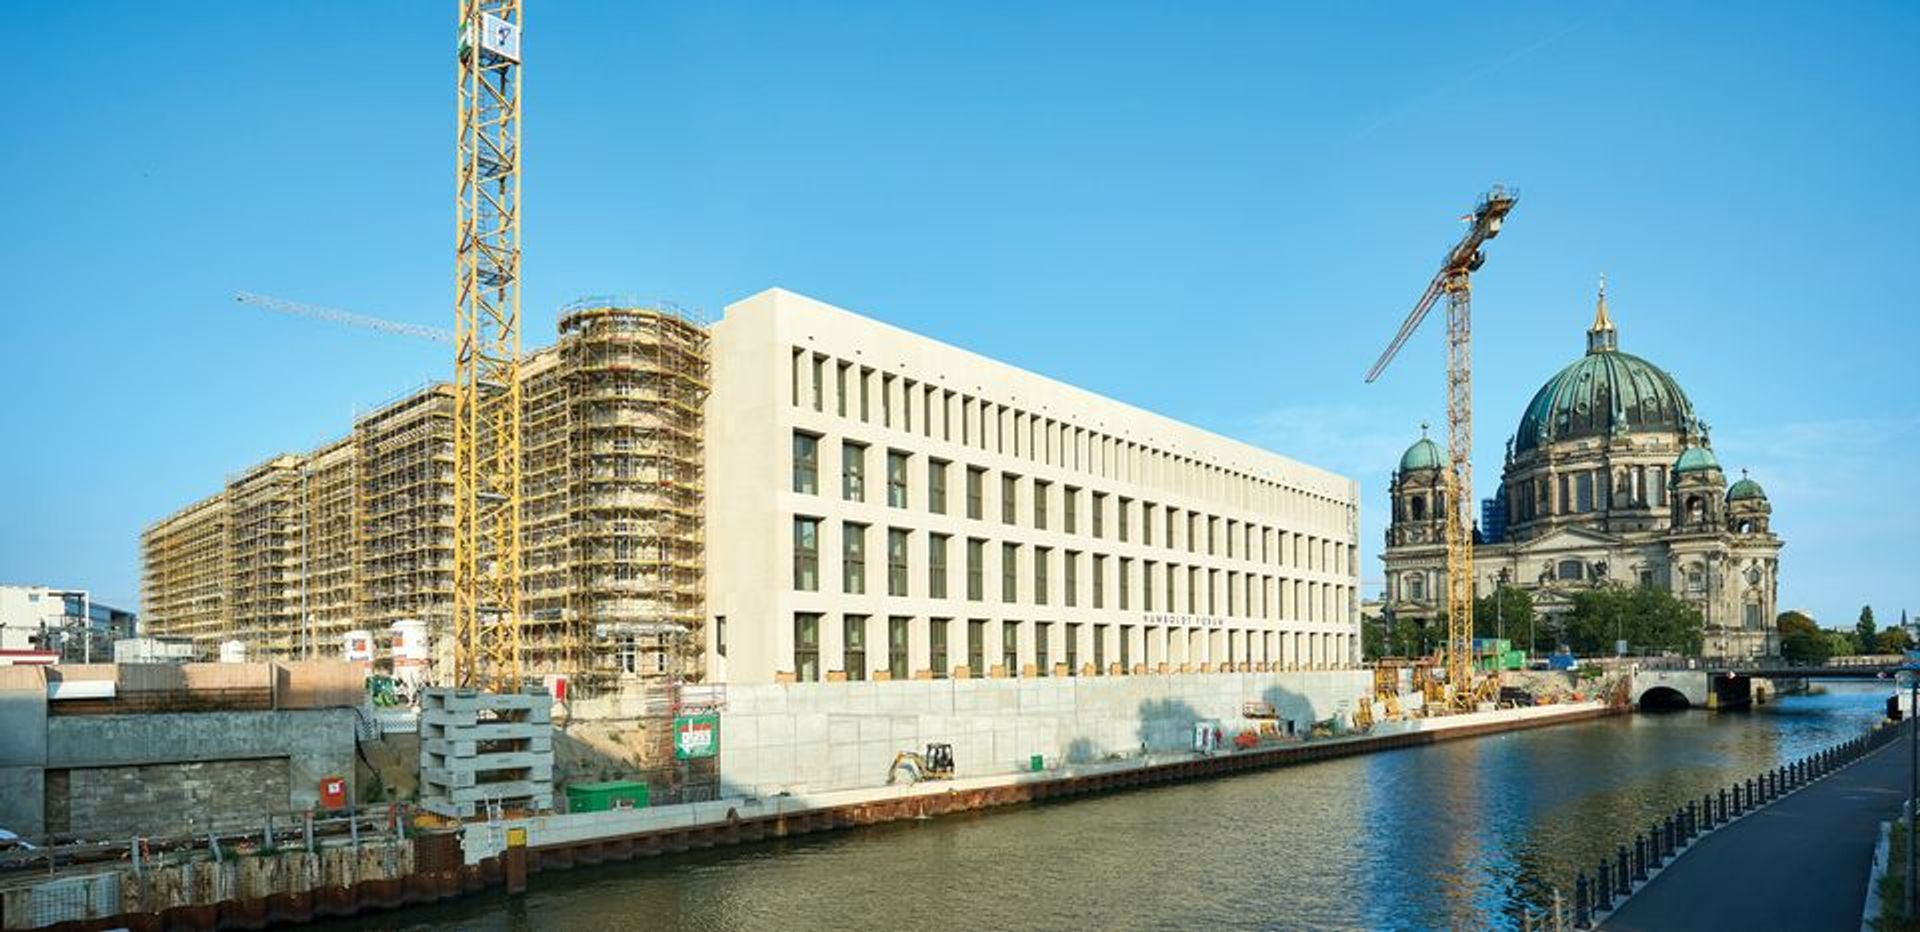 The Humboldt Forum will house Berlin's ethnological collections, many are said to have been looted © SHF/Stephan Falk